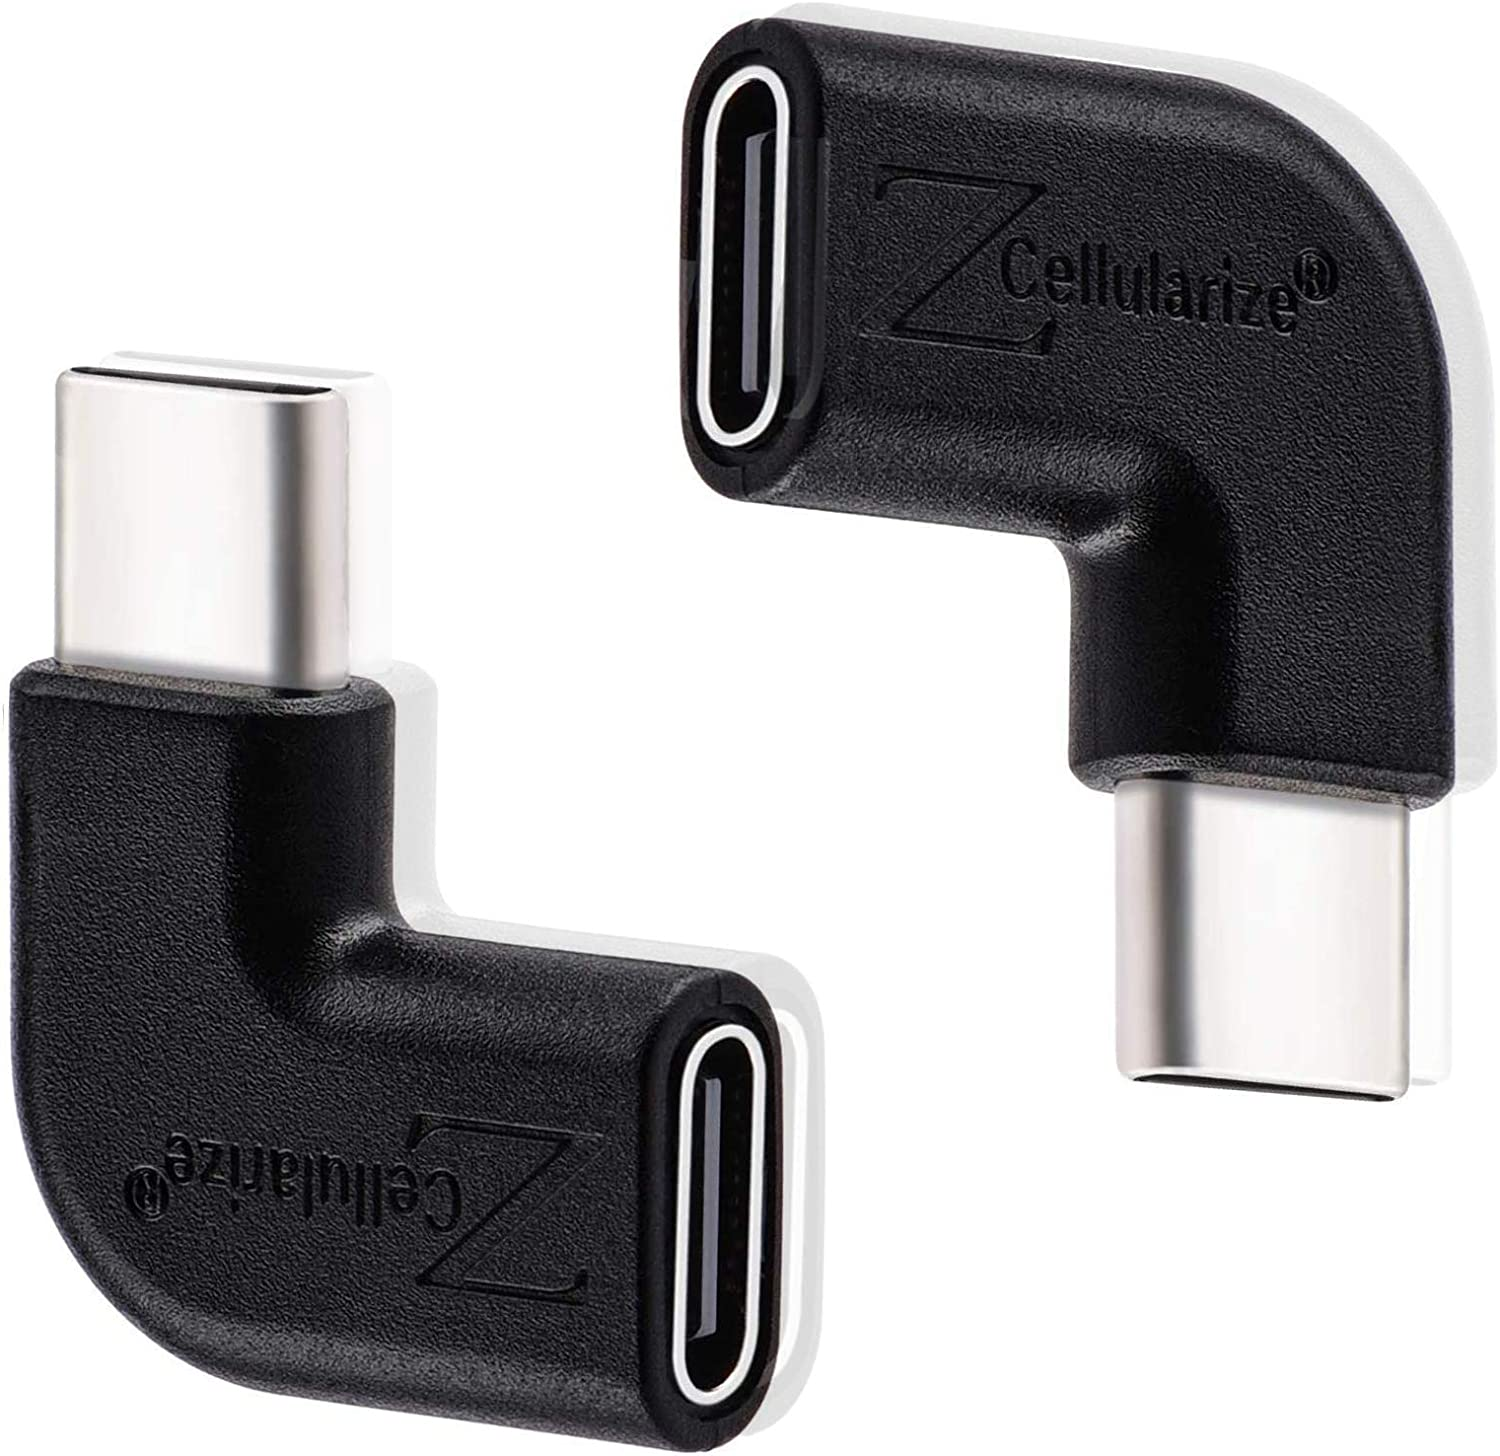 Cellularize Right Angle USB C Adapter (3 Pack, Black) 3.1/10Gbps Low Profile 90 Degree Right & Left Angle USB Type C Male to Female Extension for Nintendo Switch, Laptop, Tablet, Mobile Phone